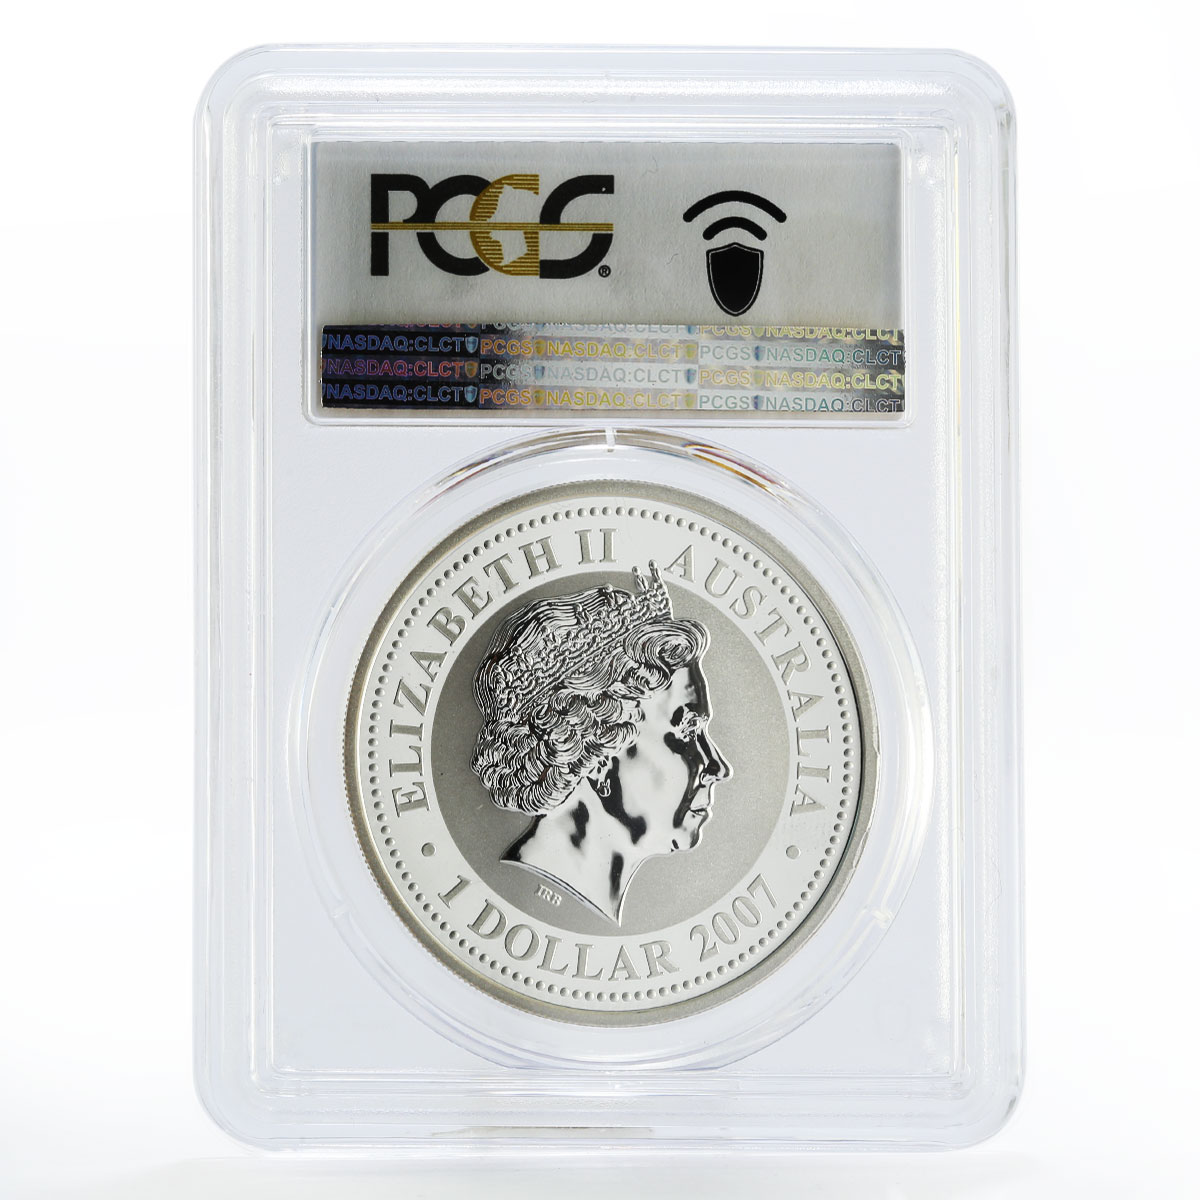 Australia 1 dollar Year of the Mouse MS70 PCGS silver coin 2007